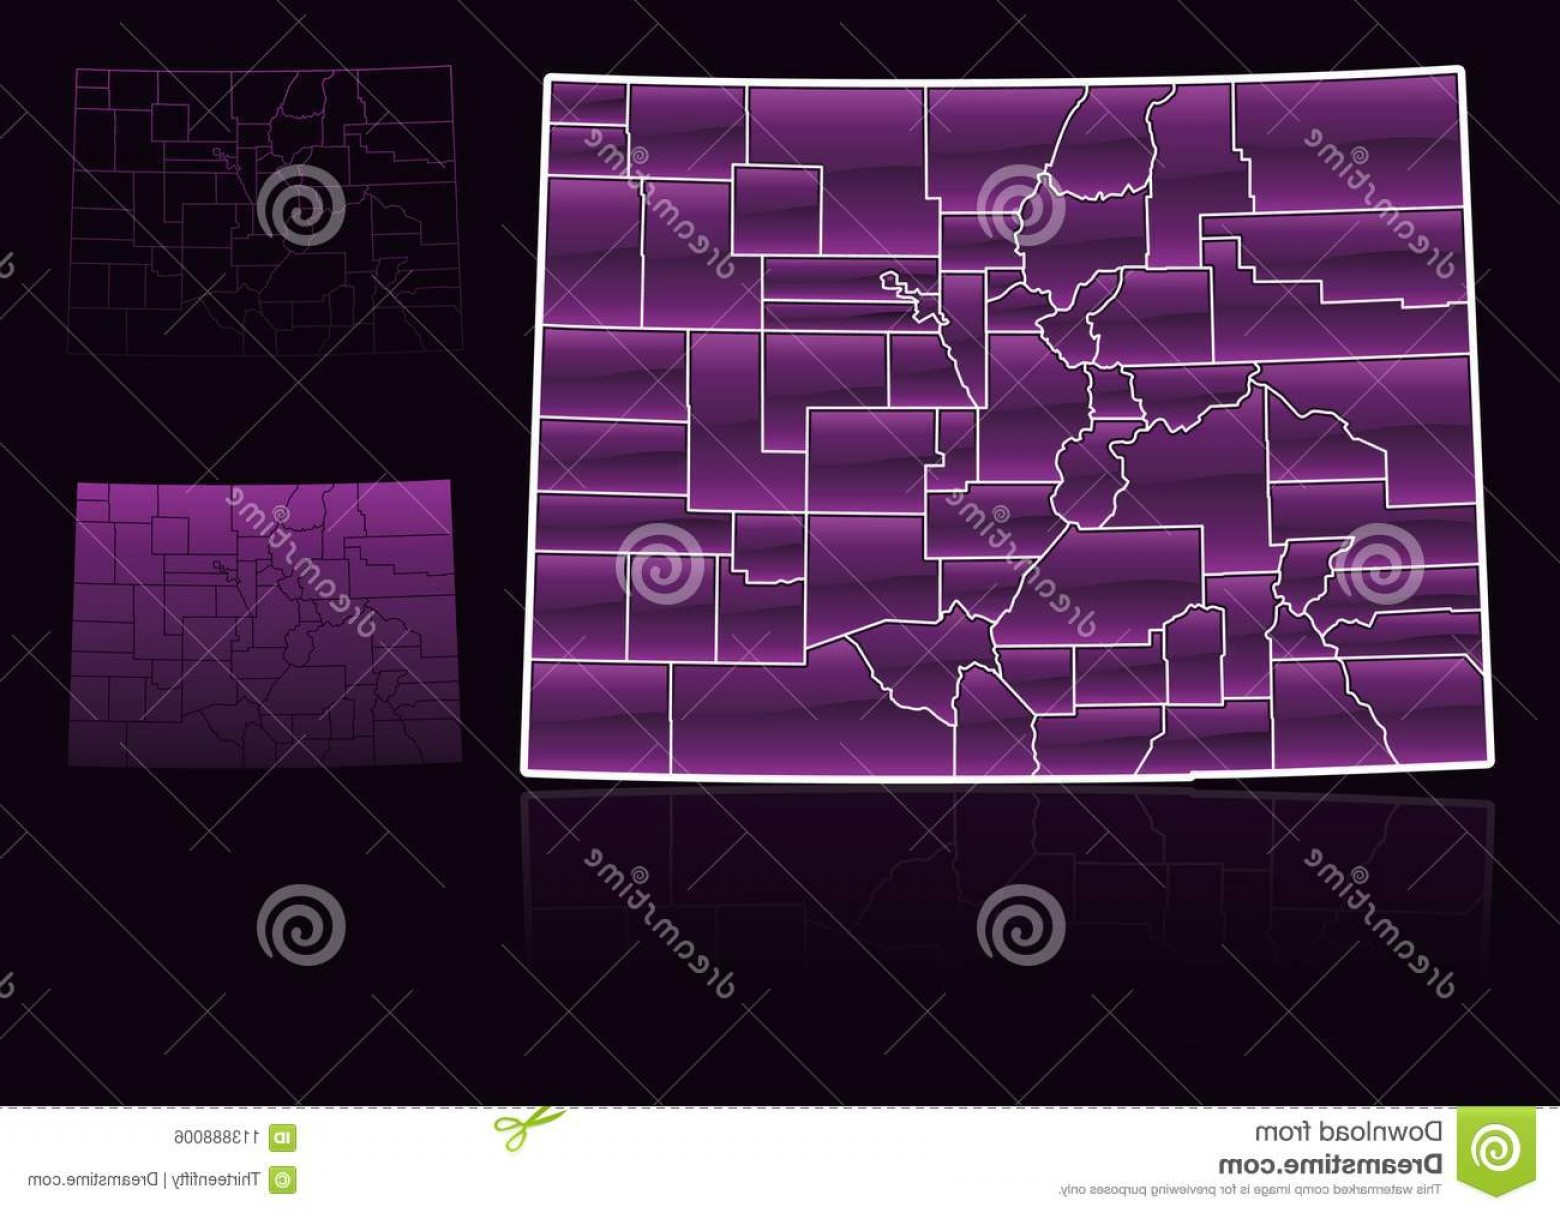 Colorado State Vector Maps: Colorado State County Map Vector Illustration Stylized Graphic Its Counties Image